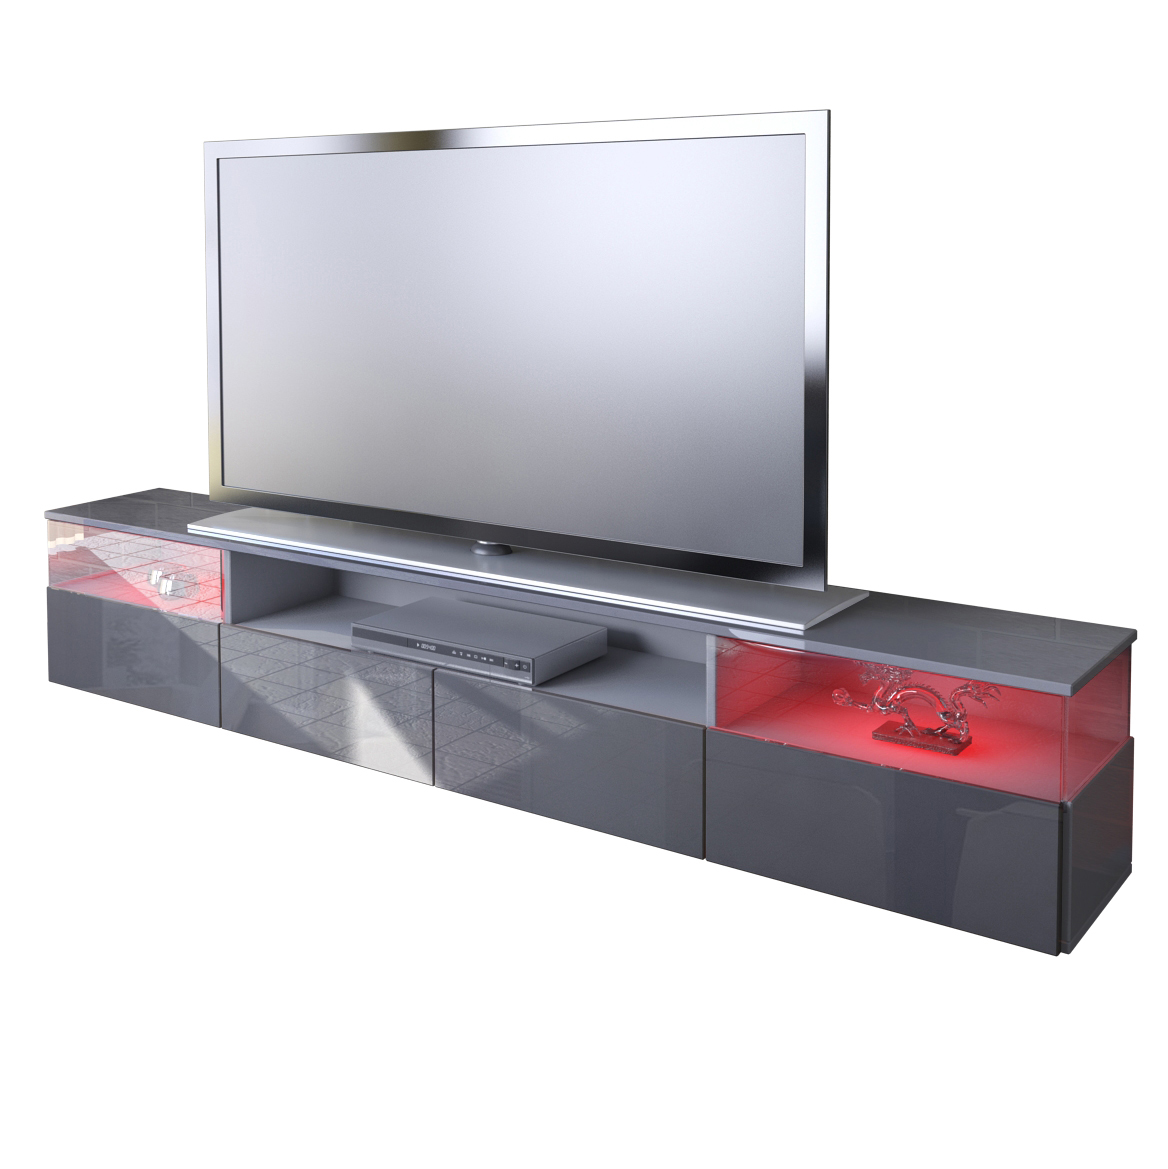 tv unit lowboard stand cabinet almeria in grey high gloss sale ebay. Black Bedroom Furniture Sets. Home Design Ideas